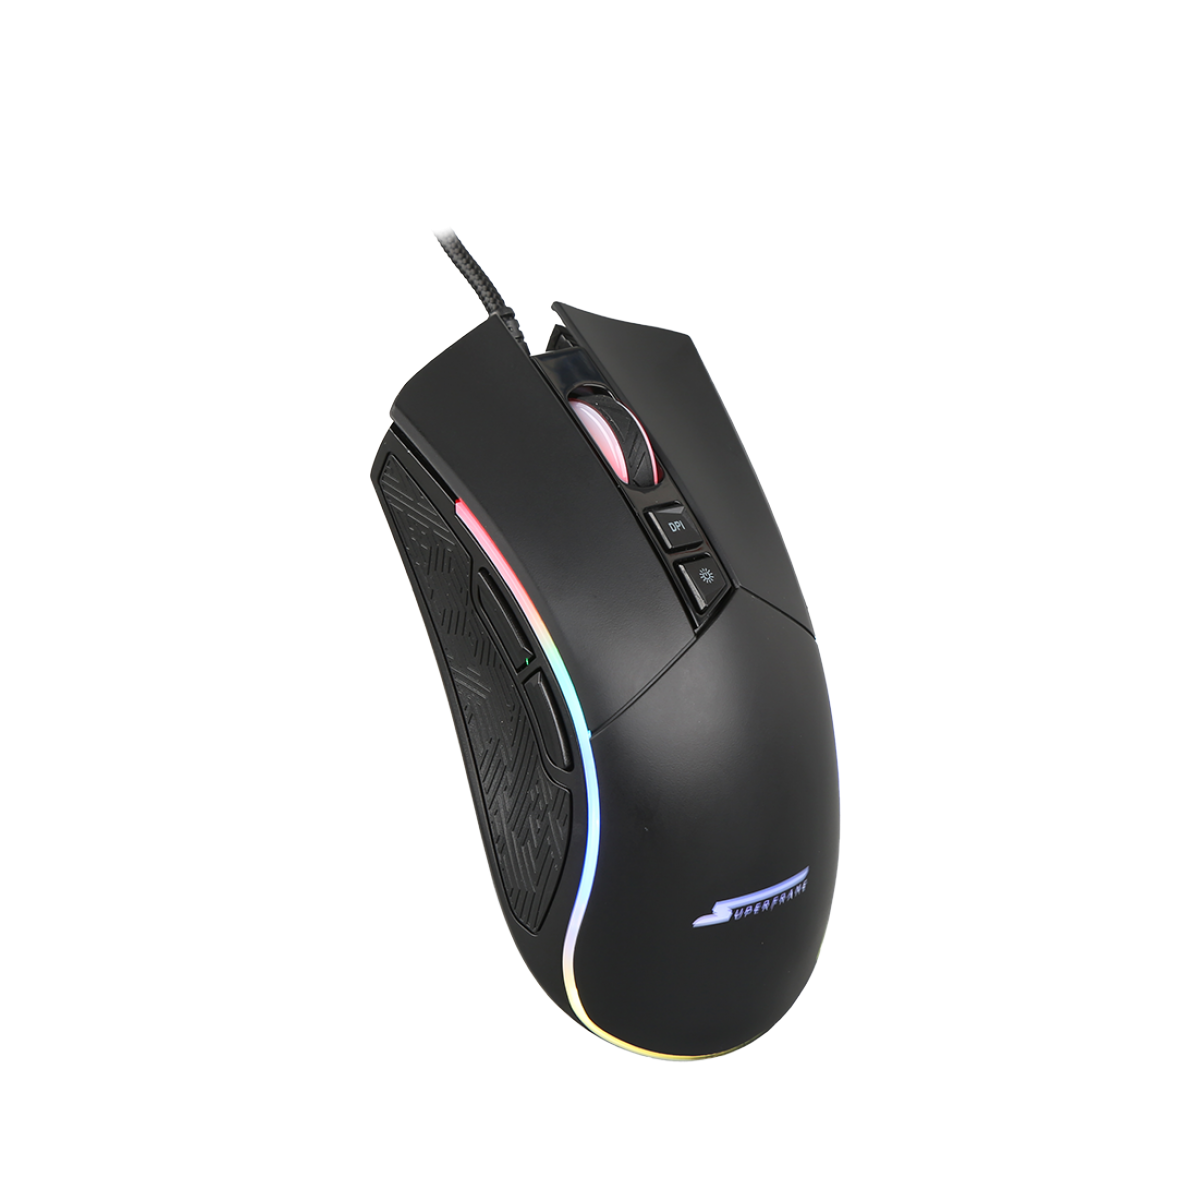 Mouse Gamer SuperFrame, BOSS, 10000 DPI, RGB, 7 Botões, Black, Sensor Pixart 3325